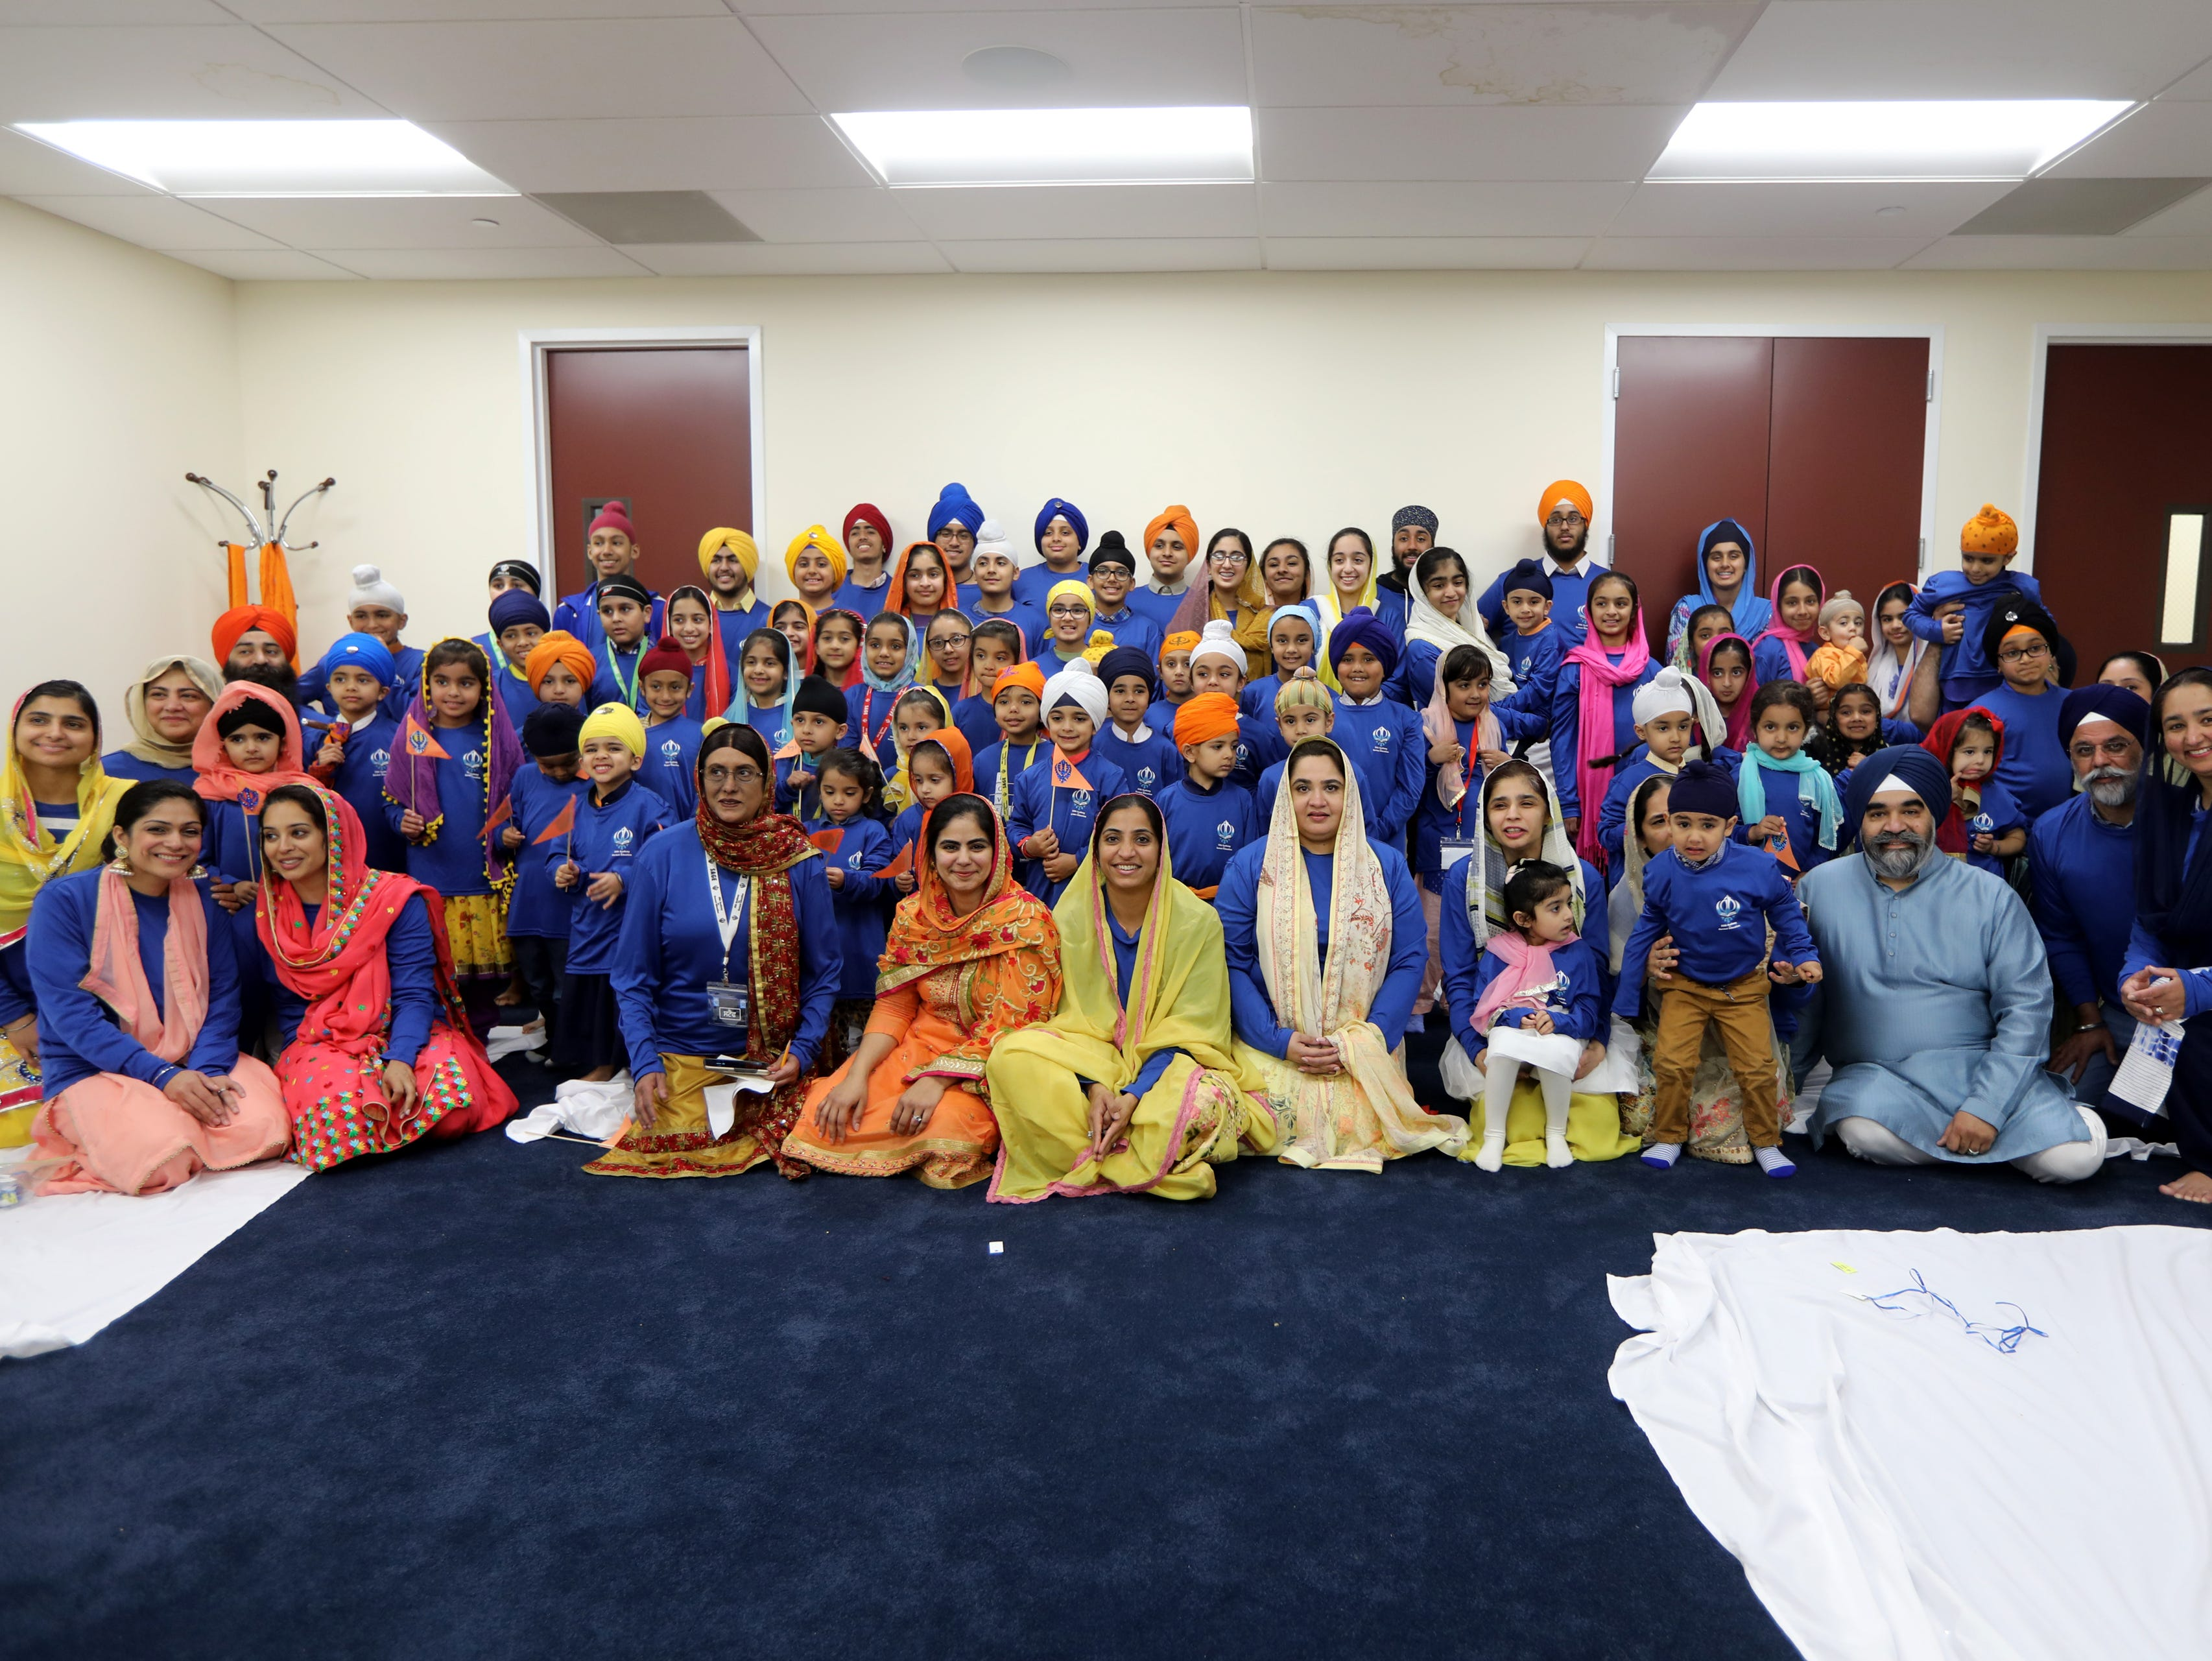 Students and faculty members of the Guru Nanak Mission's Sikh Academy for Gurmat Education (SAGE), pose for photographs, in Oakland. Sunday, April, 14, 2019